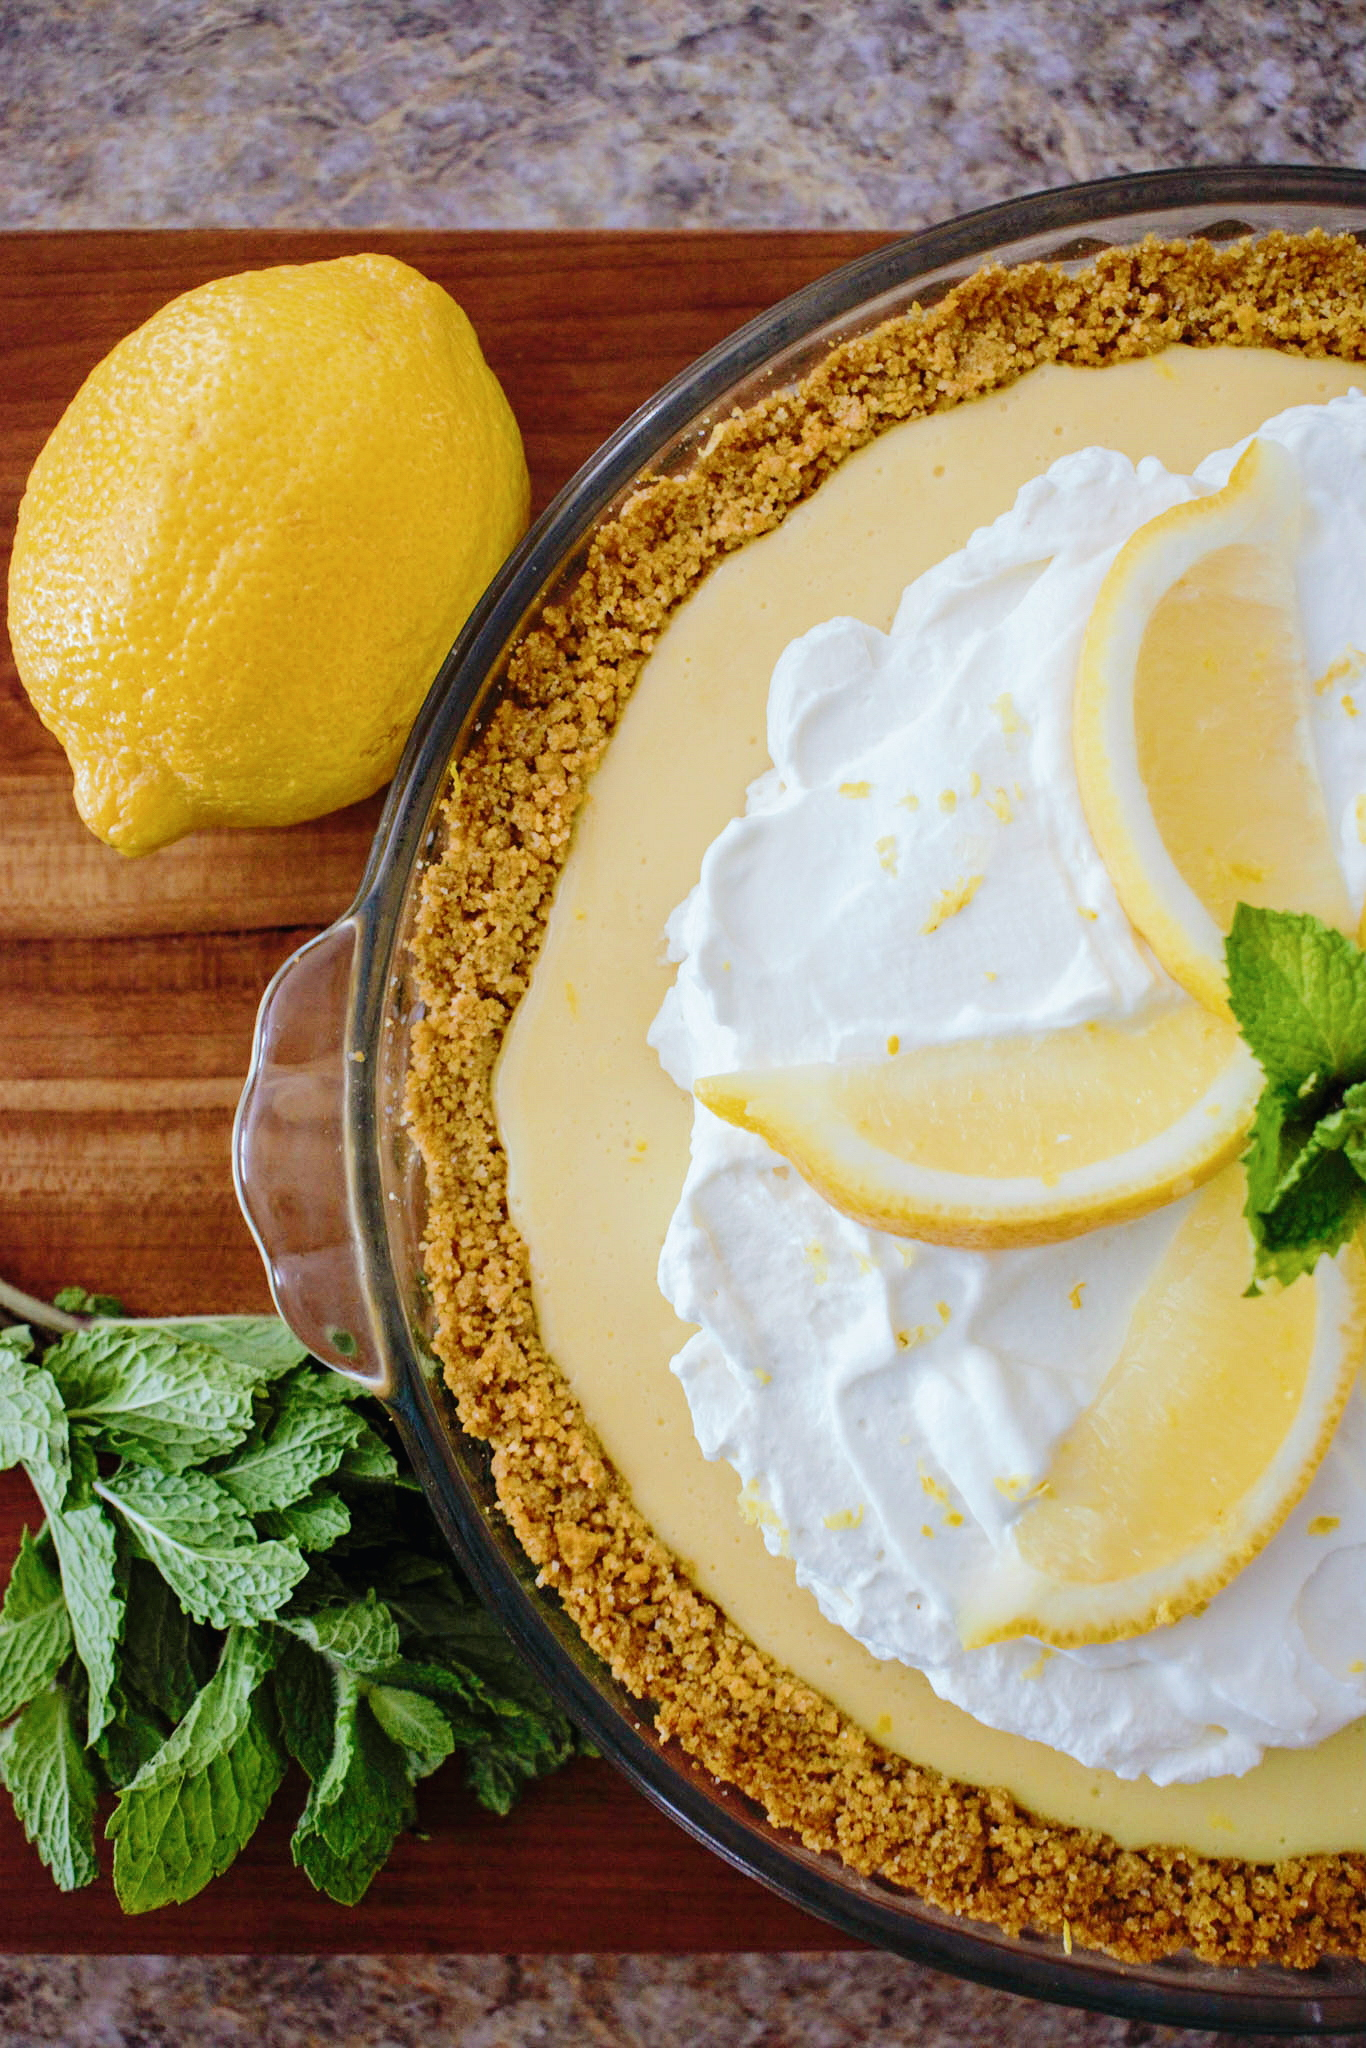 Lemon Pie with graham cracker crust, whip cream topping and sliced lemon wedges and mint leaves for garnish